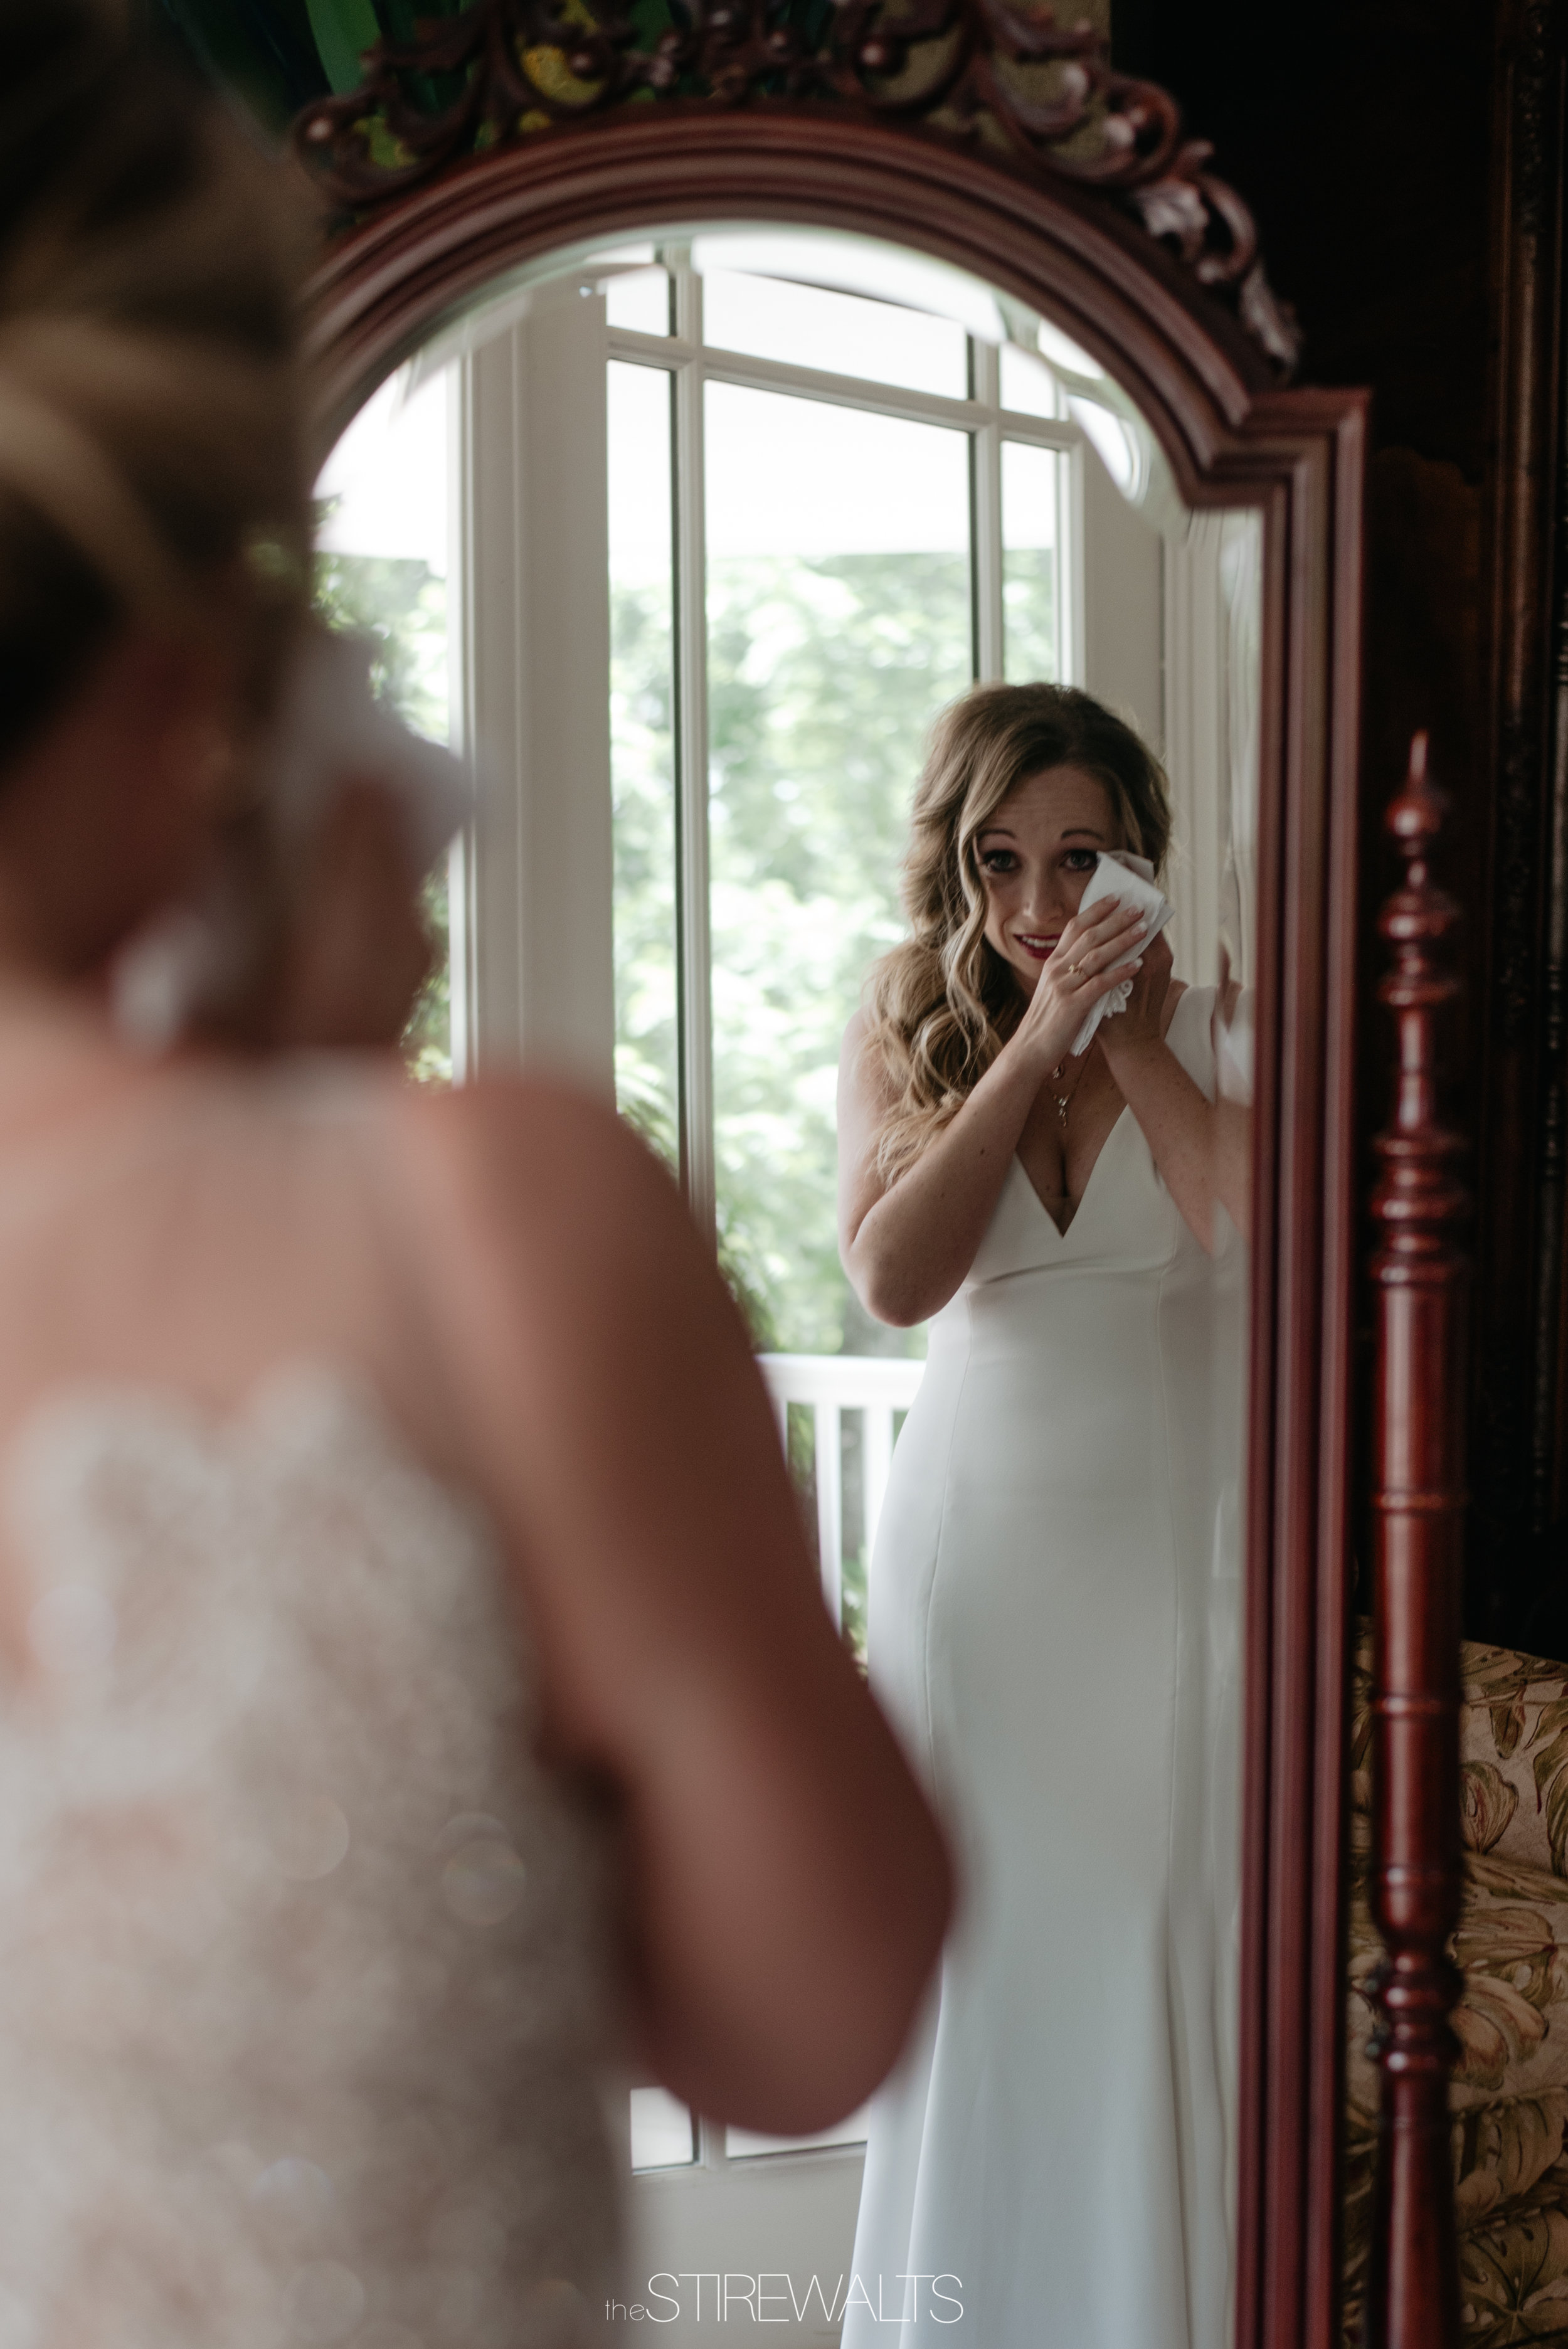 Kayla.Jay.Wedding.Blog.2018.©TheStirewalts-33.jpg